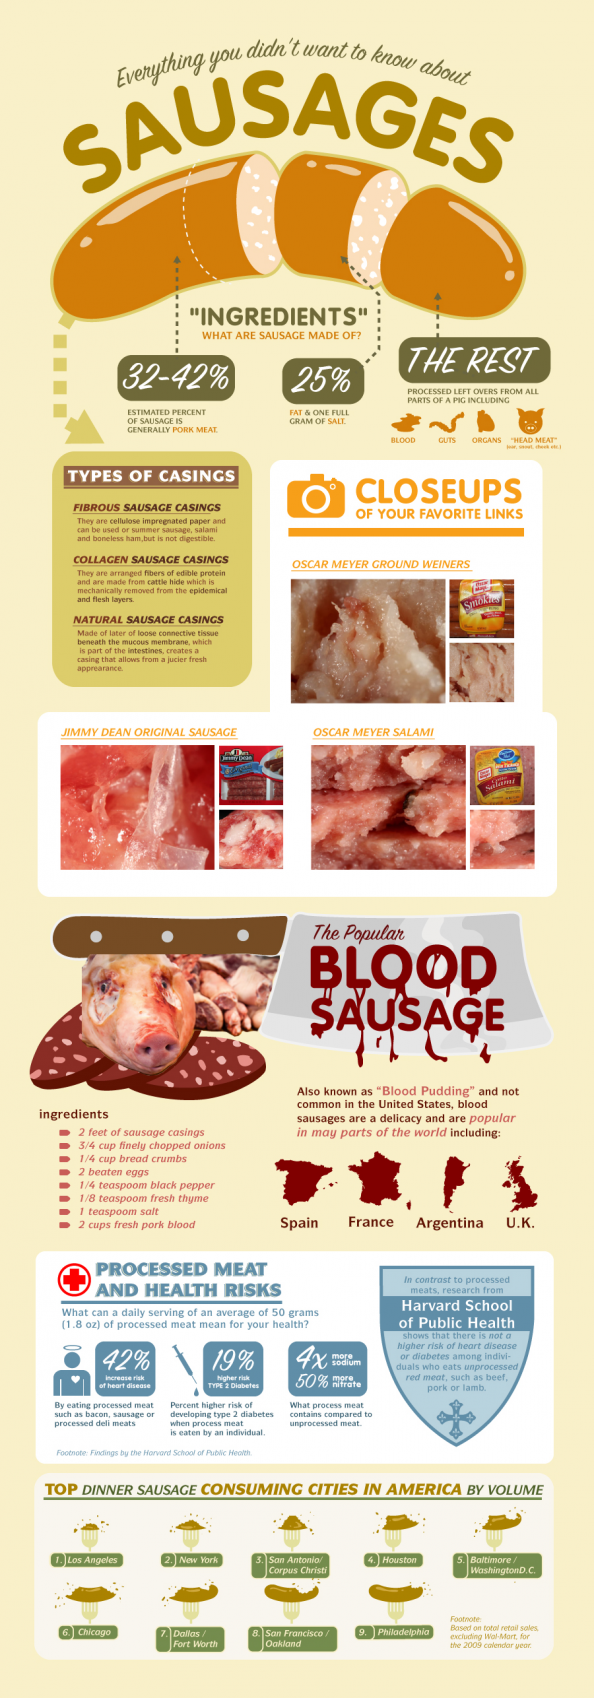 Everything You Didn't Want to Know About Sausages Infographic